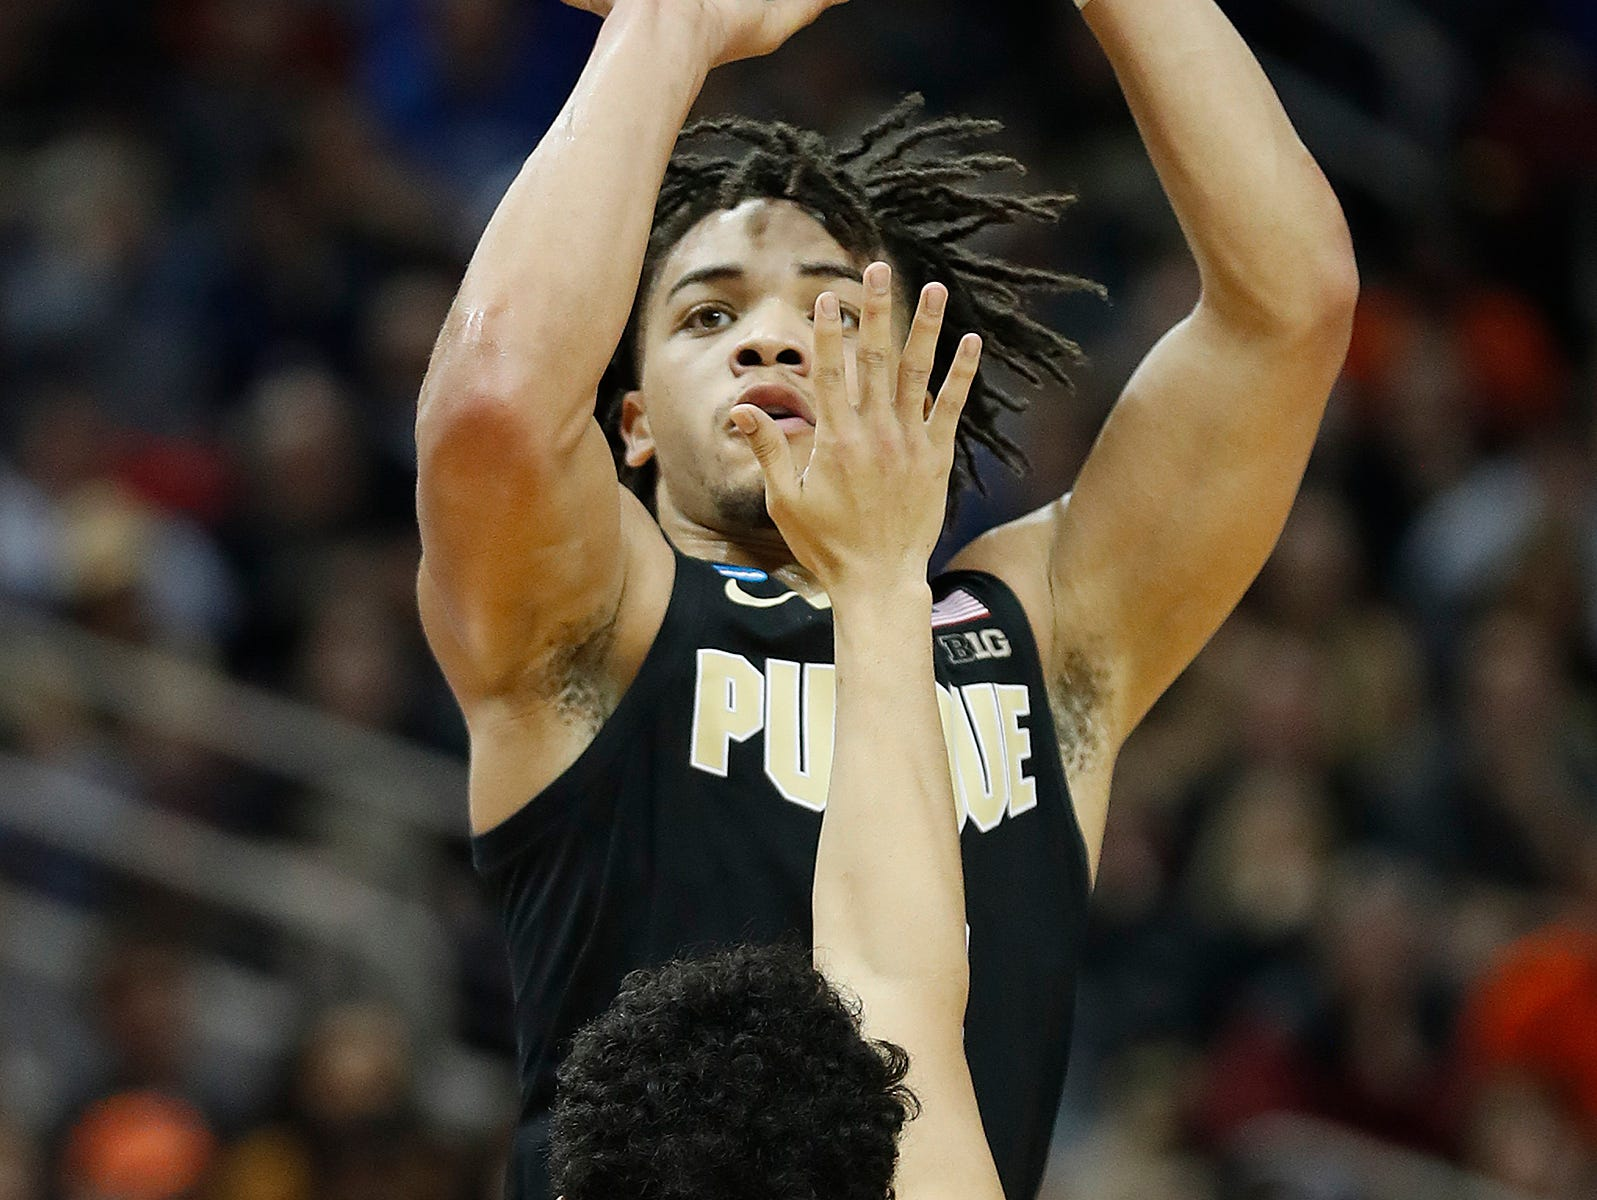 "Purdue Boilermakers guard Carsen Edwards (3) shoots a three point basket over Virginia Cavaliers guard Kihei Clark (0) in the first half of their NCAA Division I Basketball Championship ""Elite 8"" basketball game at the KFC Yum! Center in Louisville, KY., on Saturday, Mar 30, 2019."